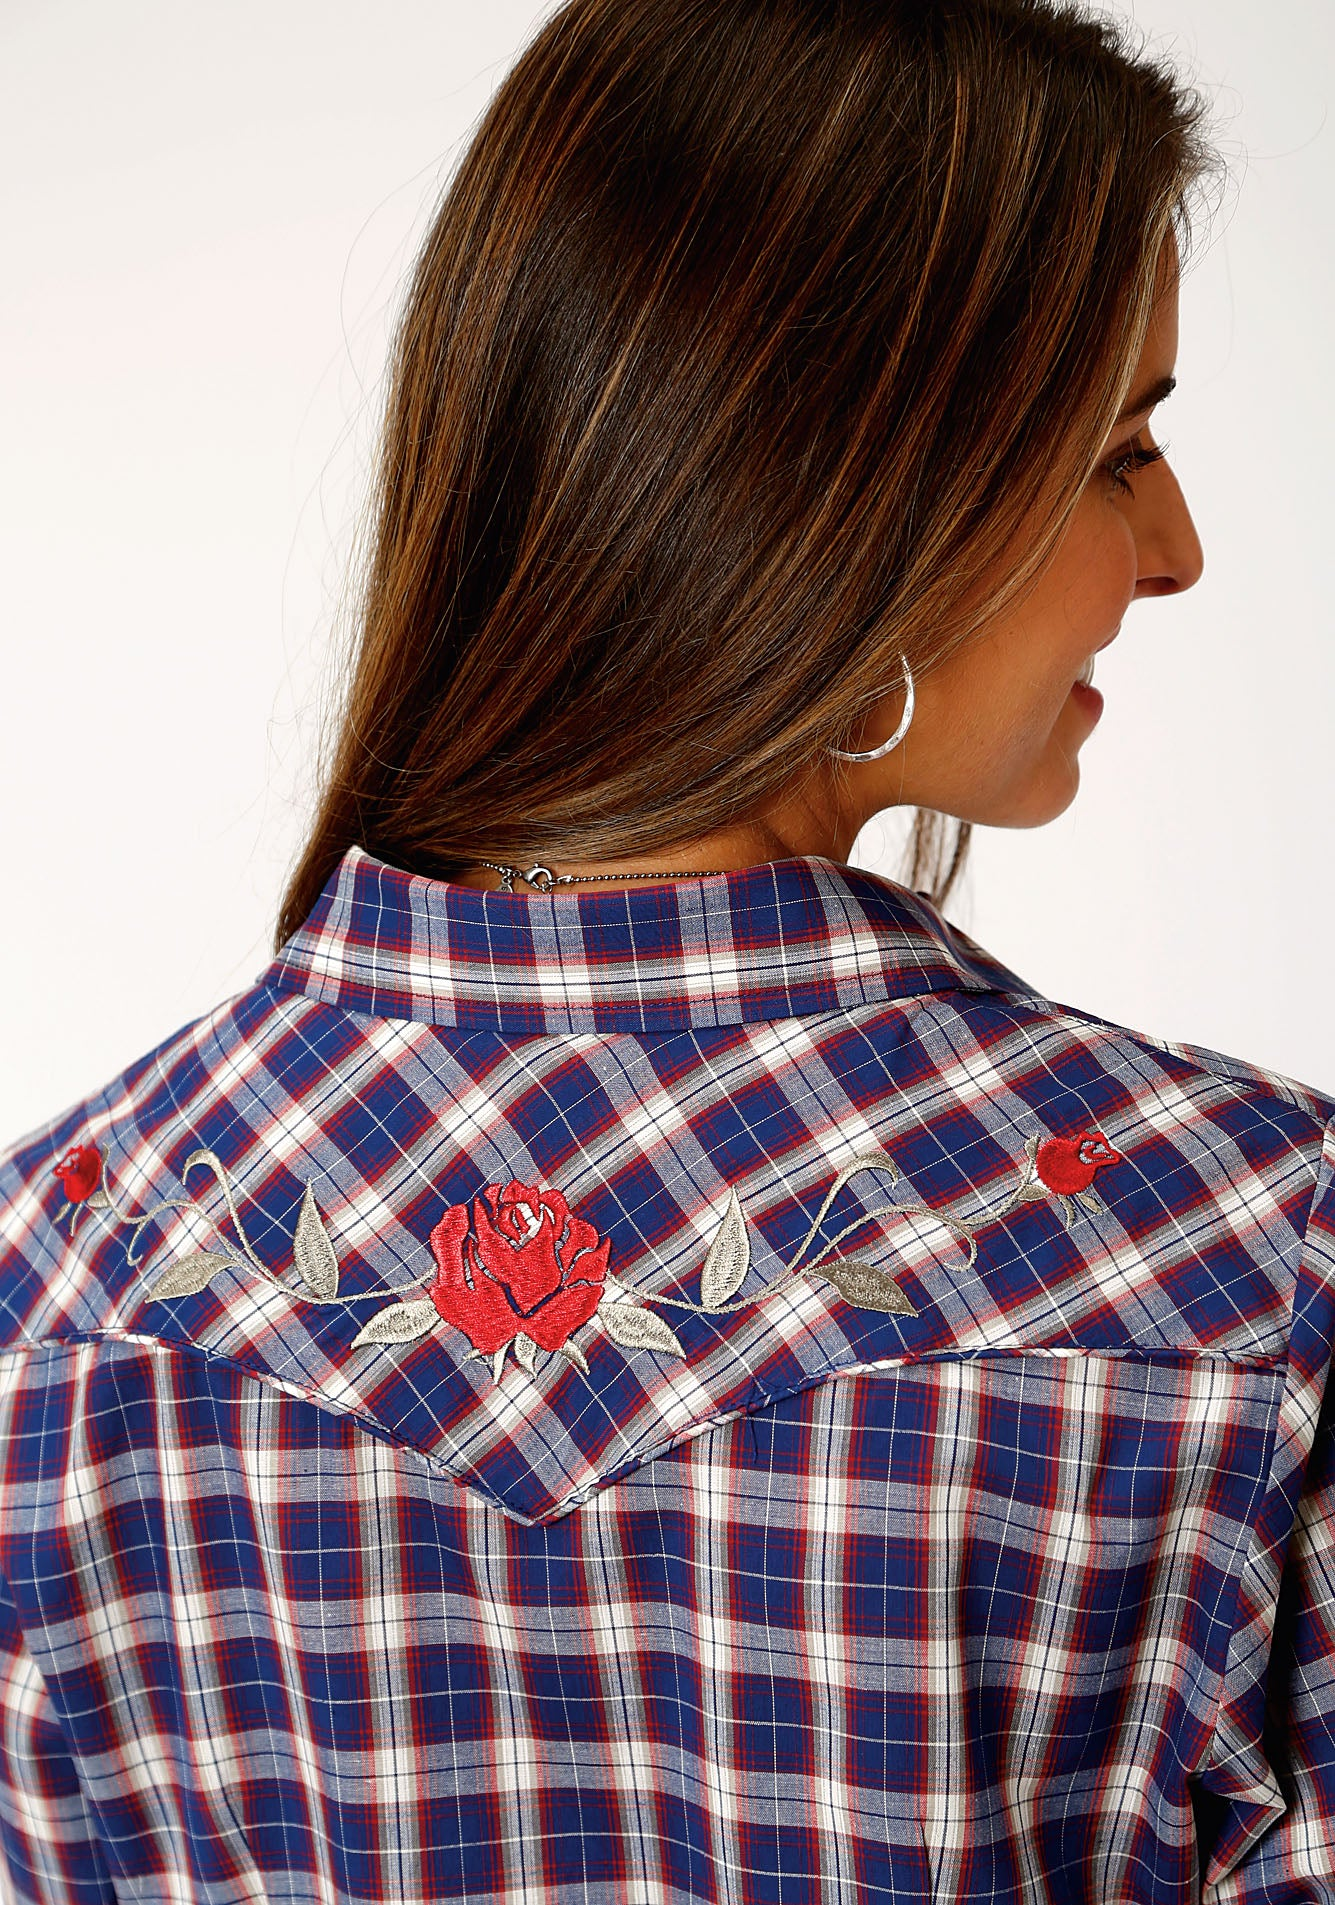 ROPER WOMENS BLUE 00041 NAVY/RED/TAN PLAID KARMAN SPECIAL STYLE LONG SLEEVE